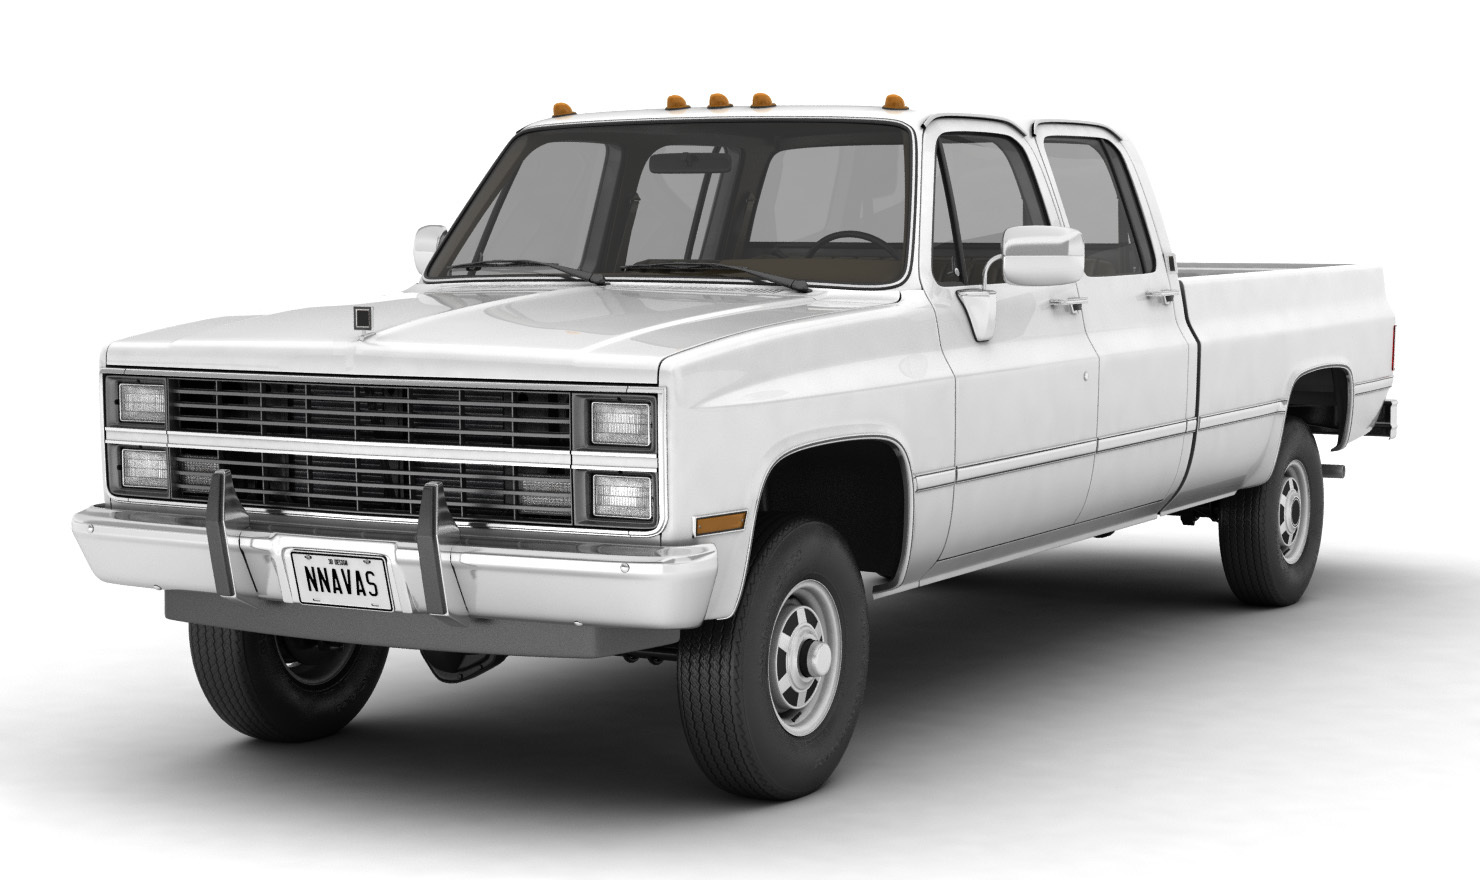 GENERIC PICKUP TRUCK 5 - EXTENDED LICENSE